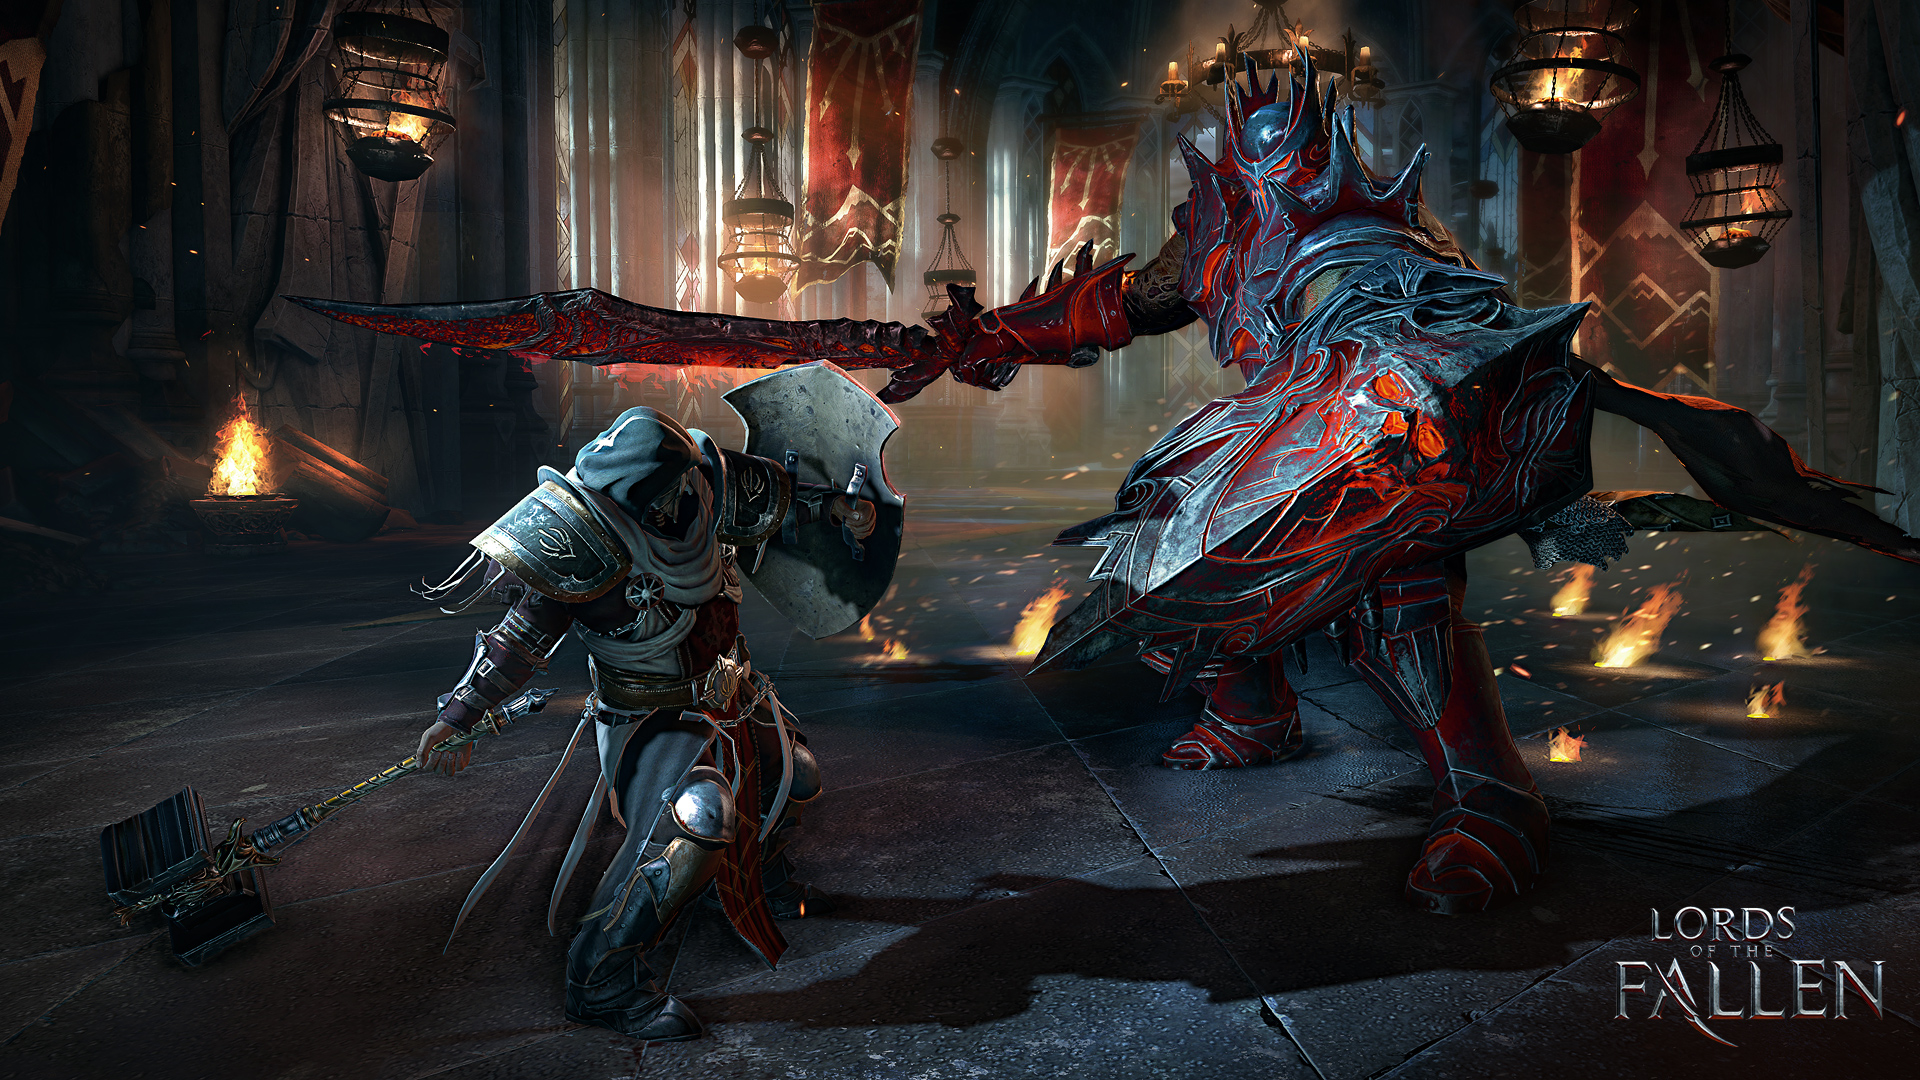 Lords of the Fallen: A few tips to help you in this Souls-like adventure